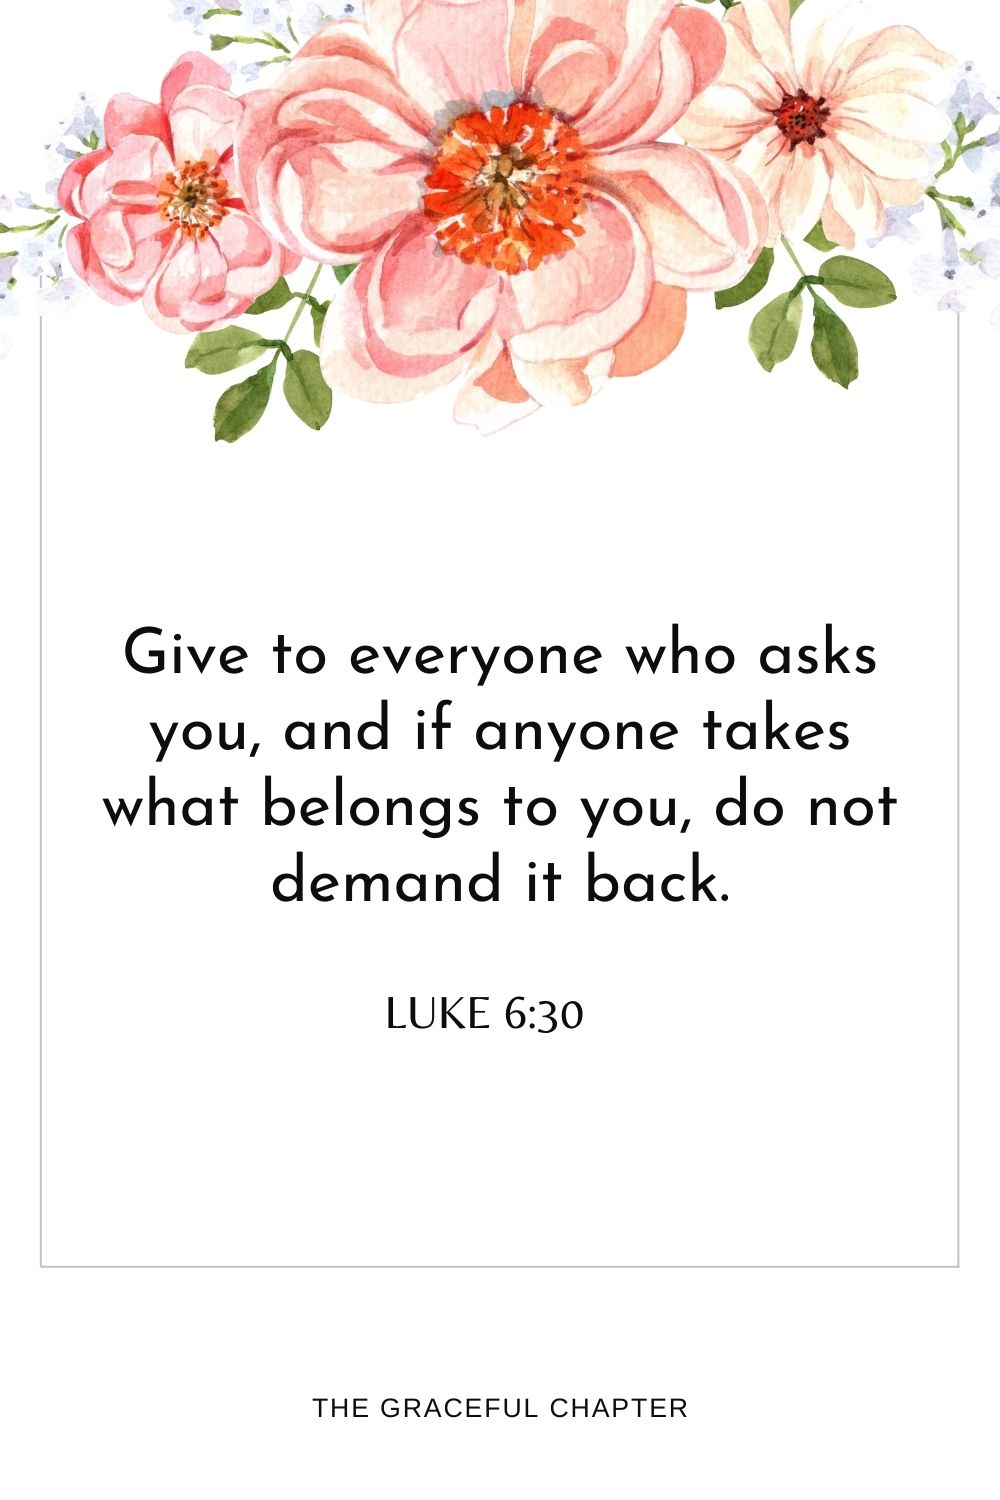 Give to everyone who asks you, and if anyone takes what belongs to you, do not demand it back. Luke 6:30